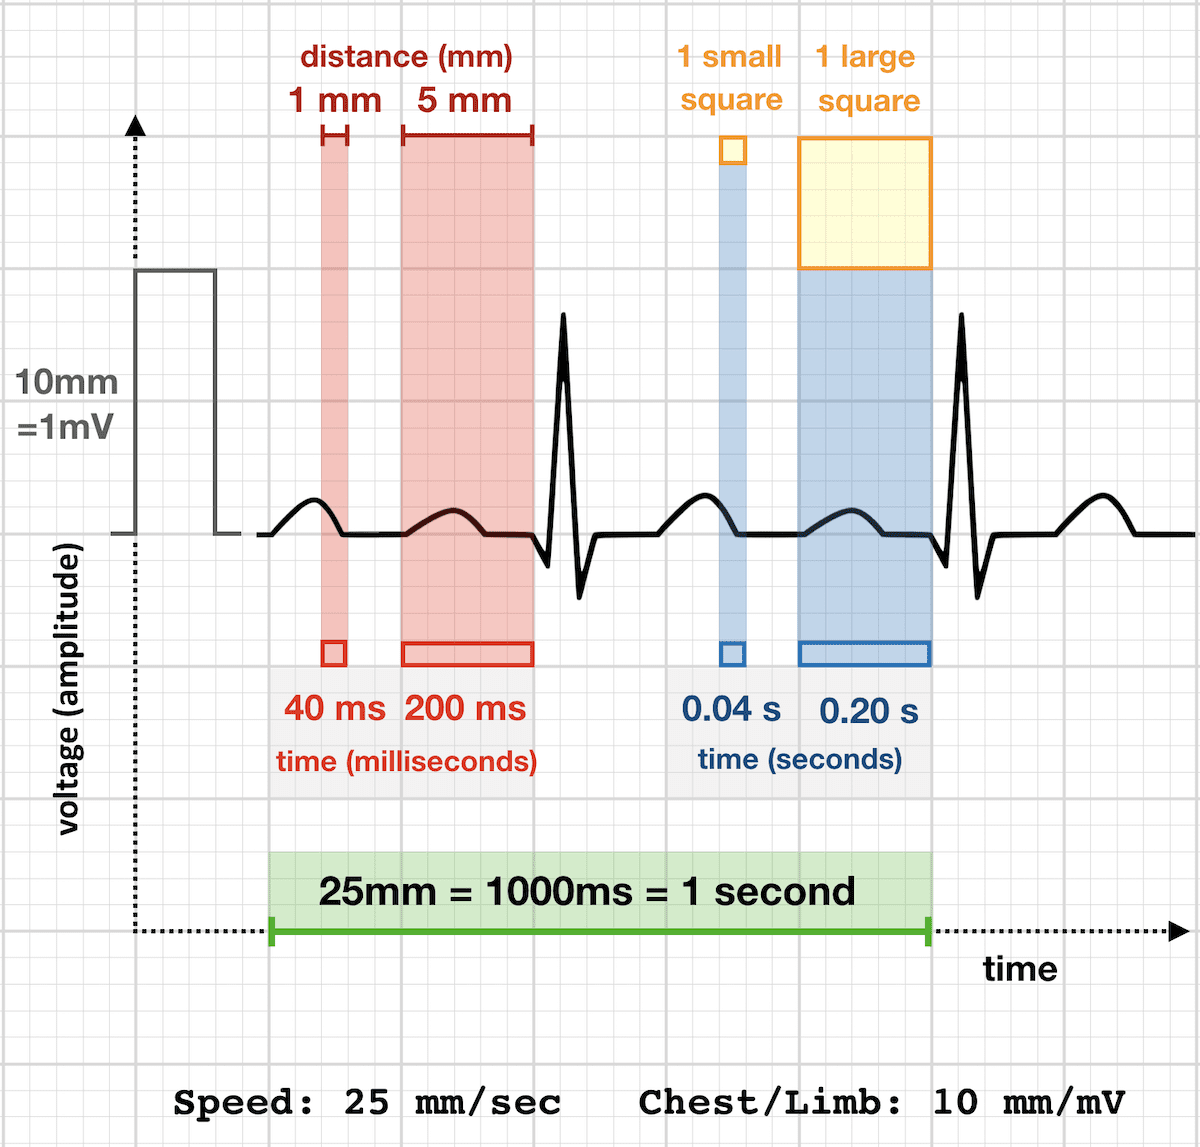 hight resolution of ecg rate 25 mm sec standard paper speed